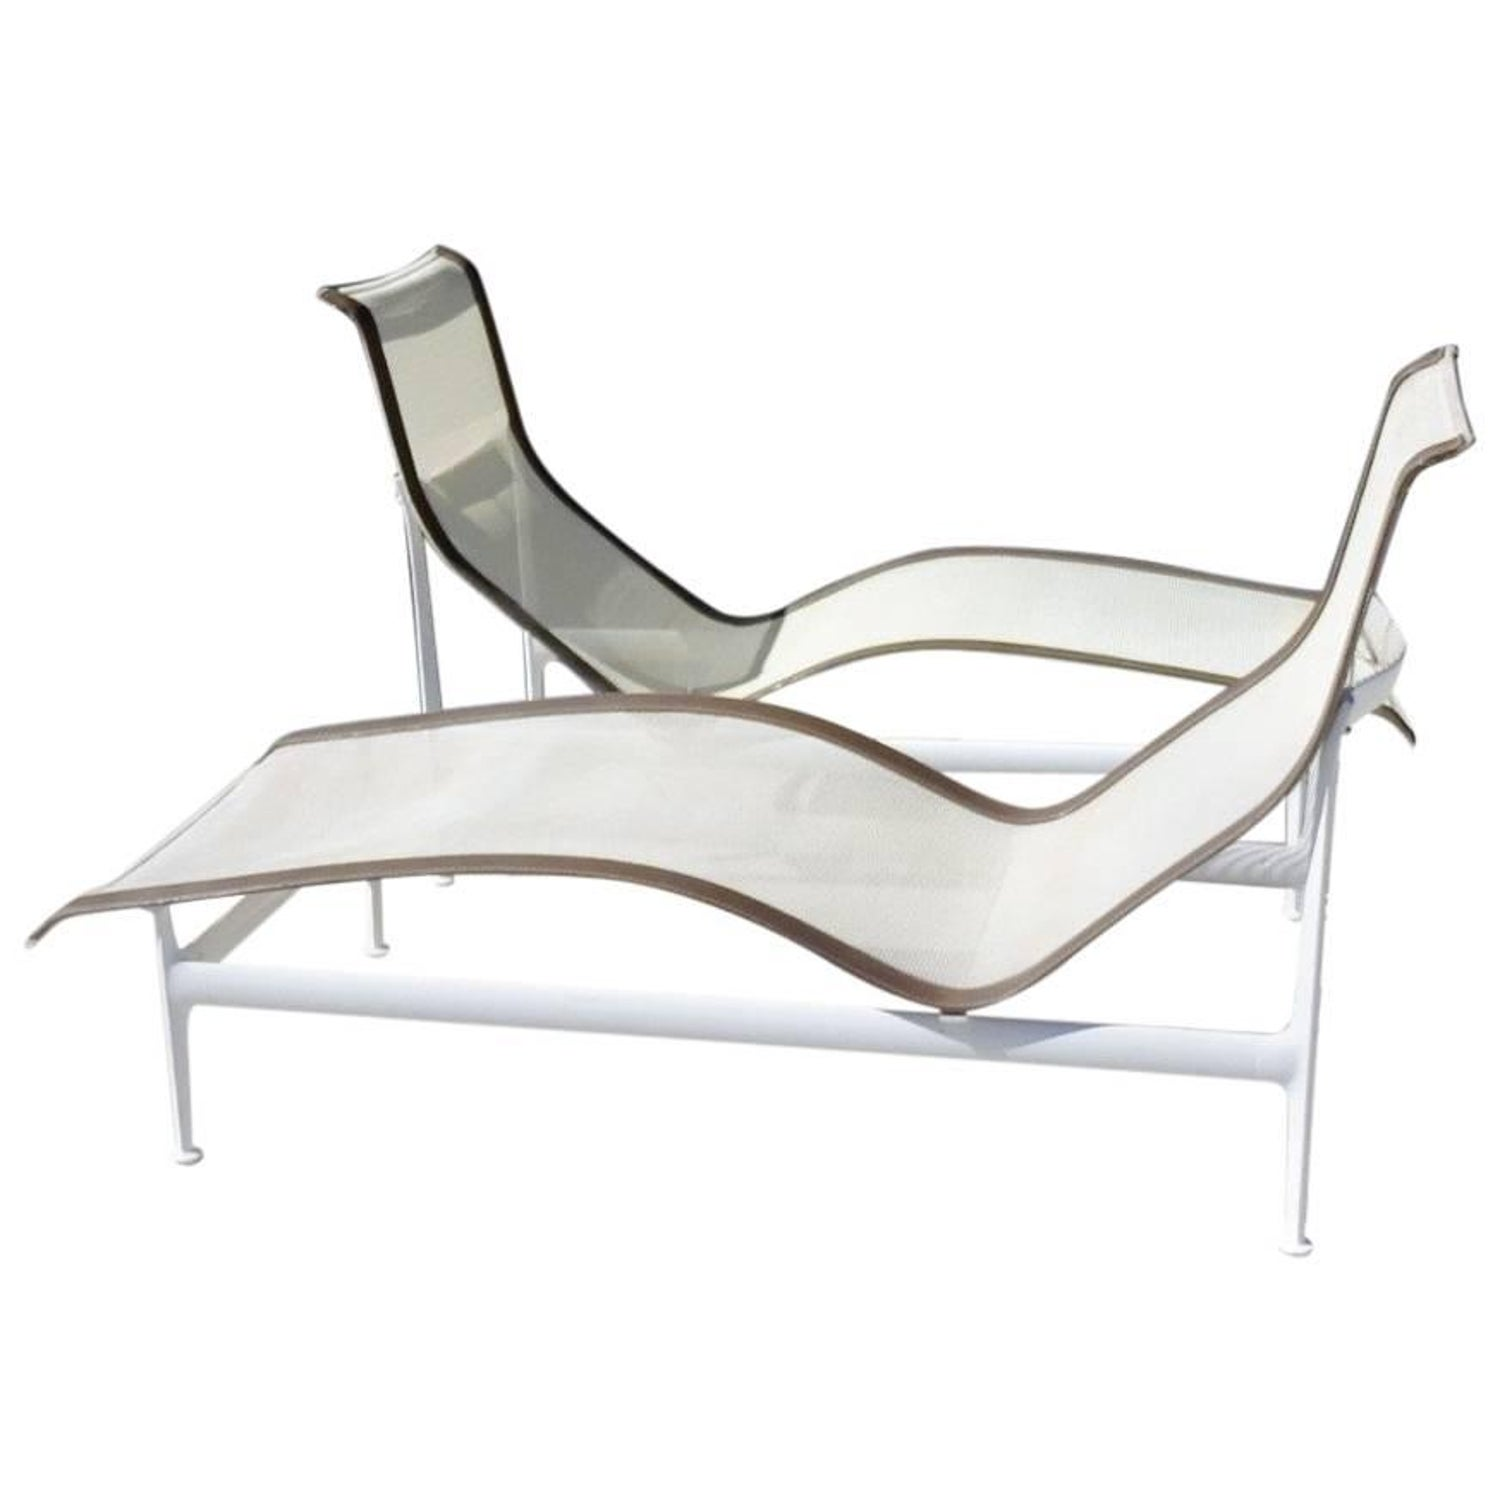 Pair of richard schultz knoll 1966 leisure group chaise lounges at 1stdibs